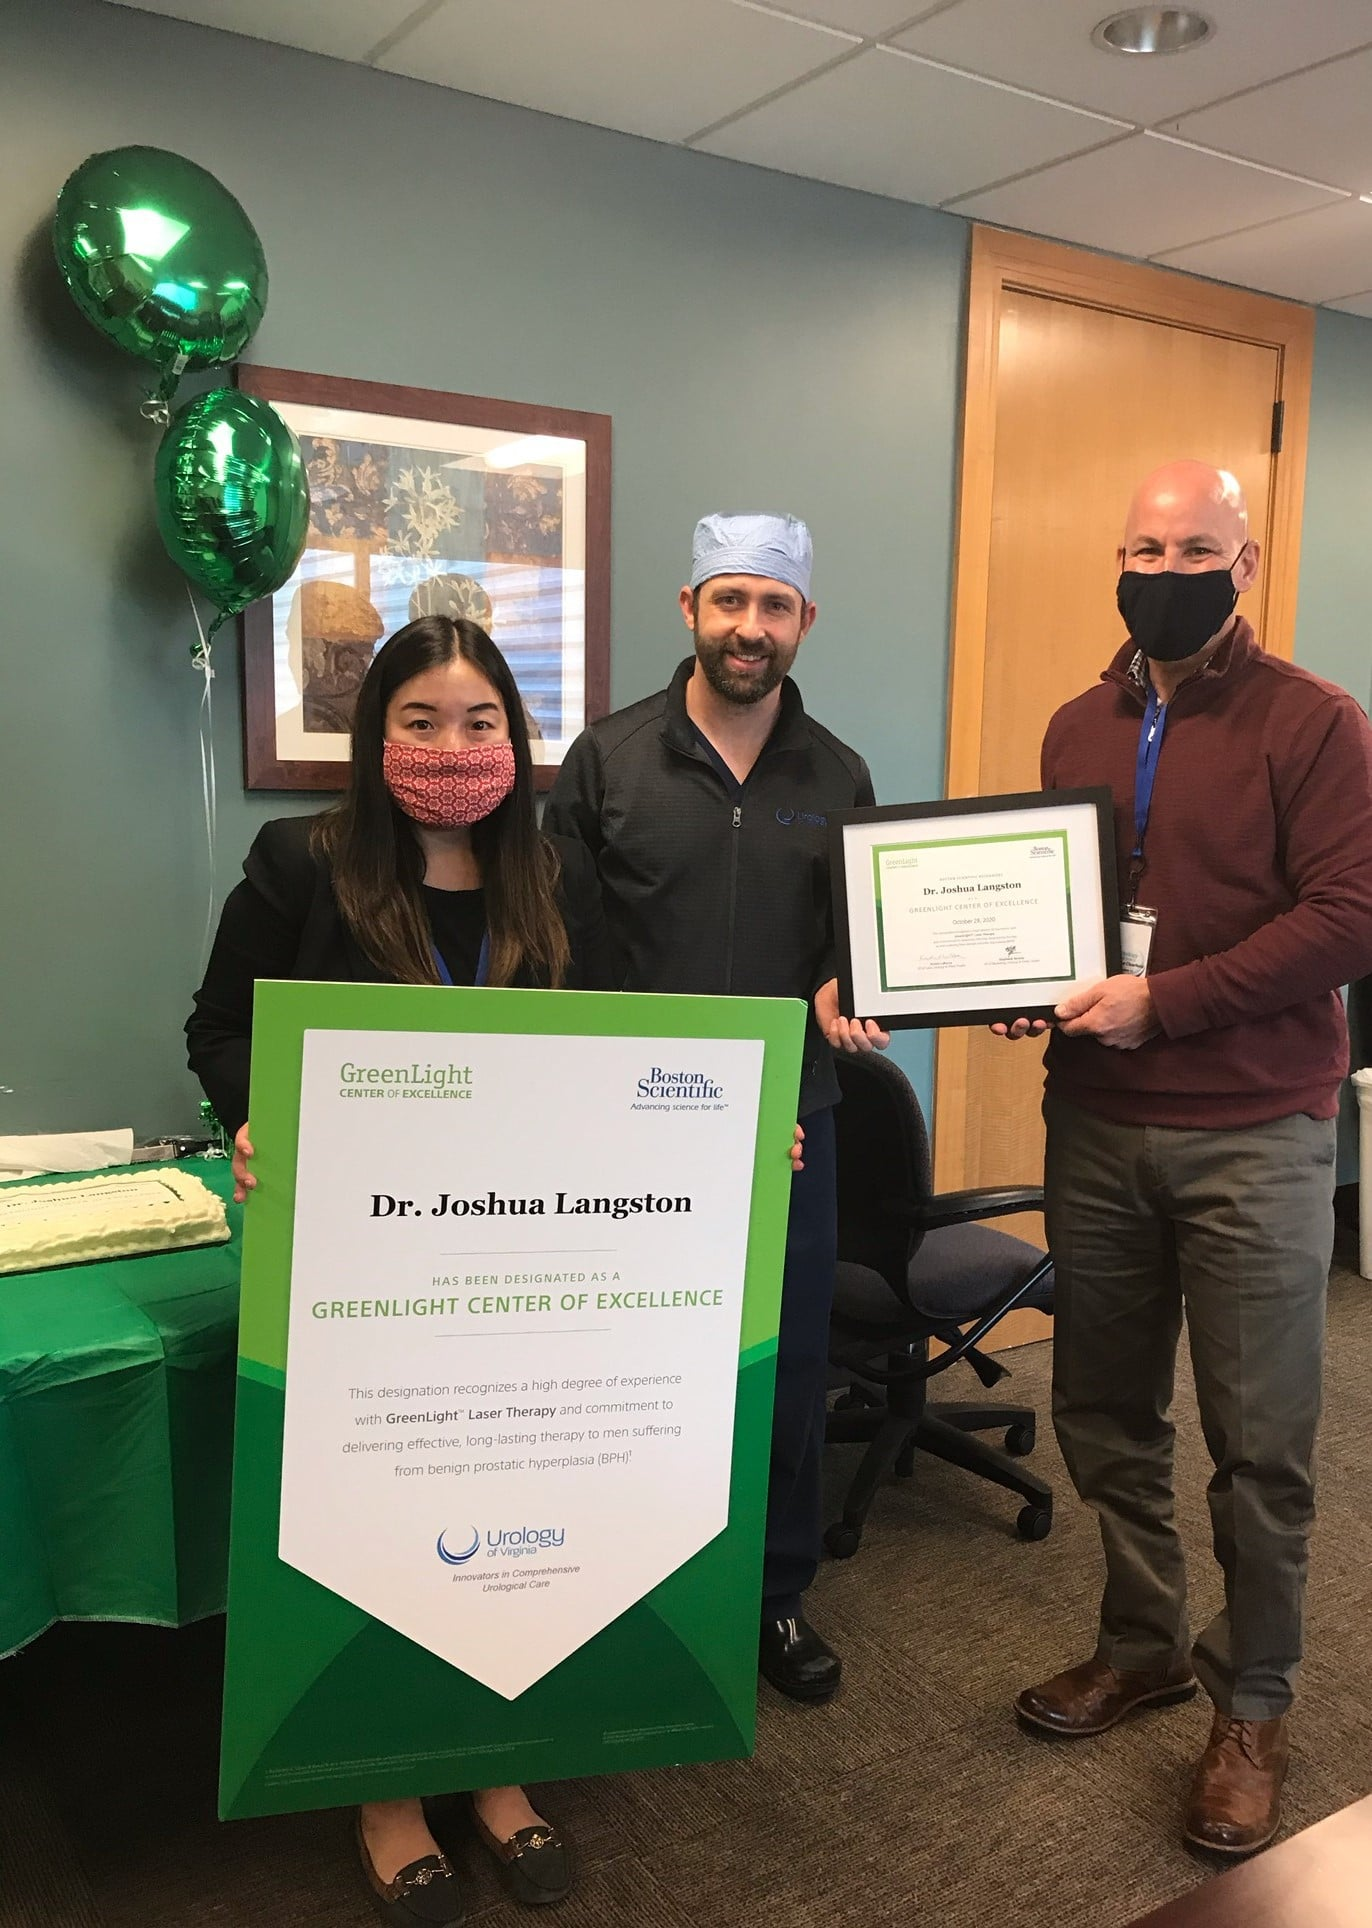 Congratulations to Dr. Joshua Langston for being designated a GreenLight Center of Excellence!